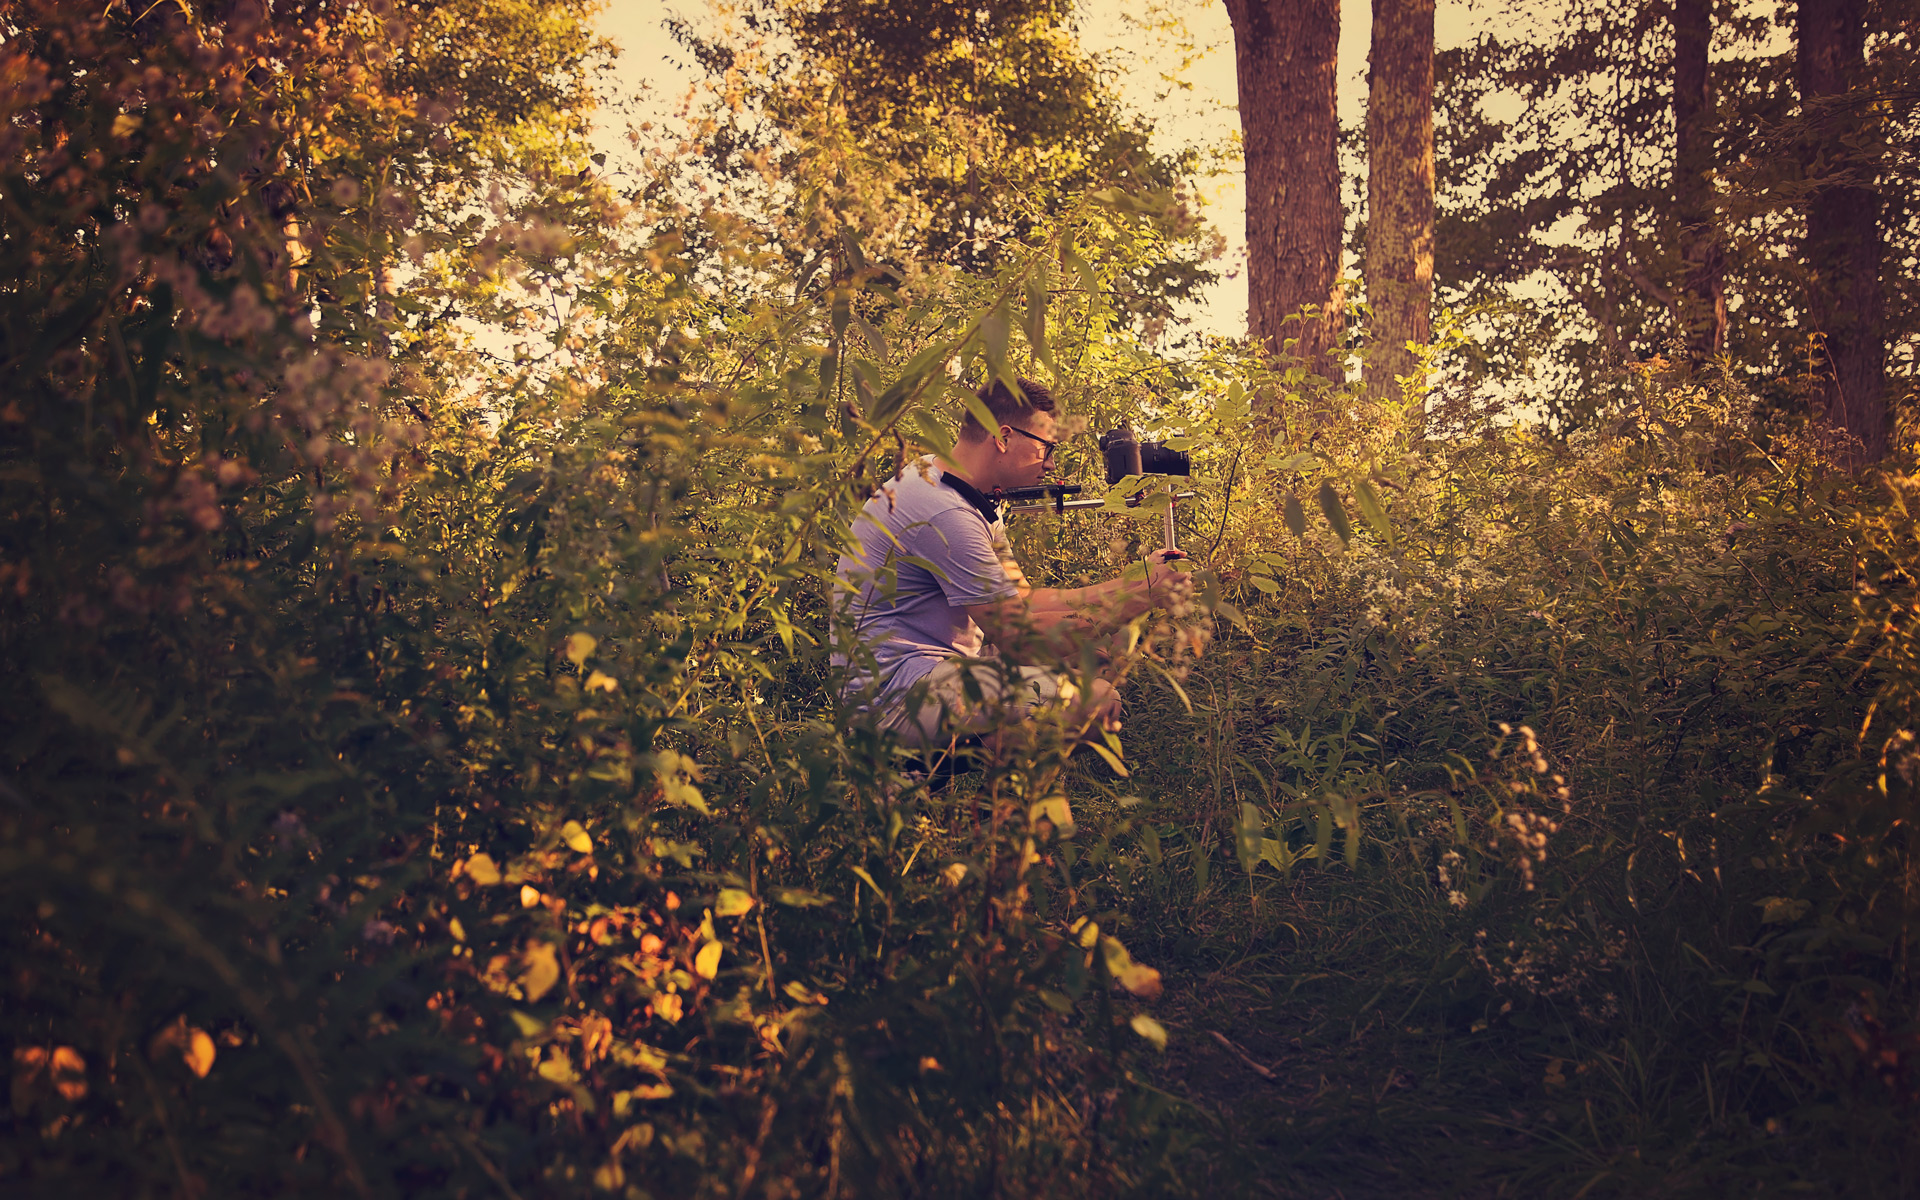 filming-in-the-woods-at-dusk-unity-maine-parisleaf.jpg